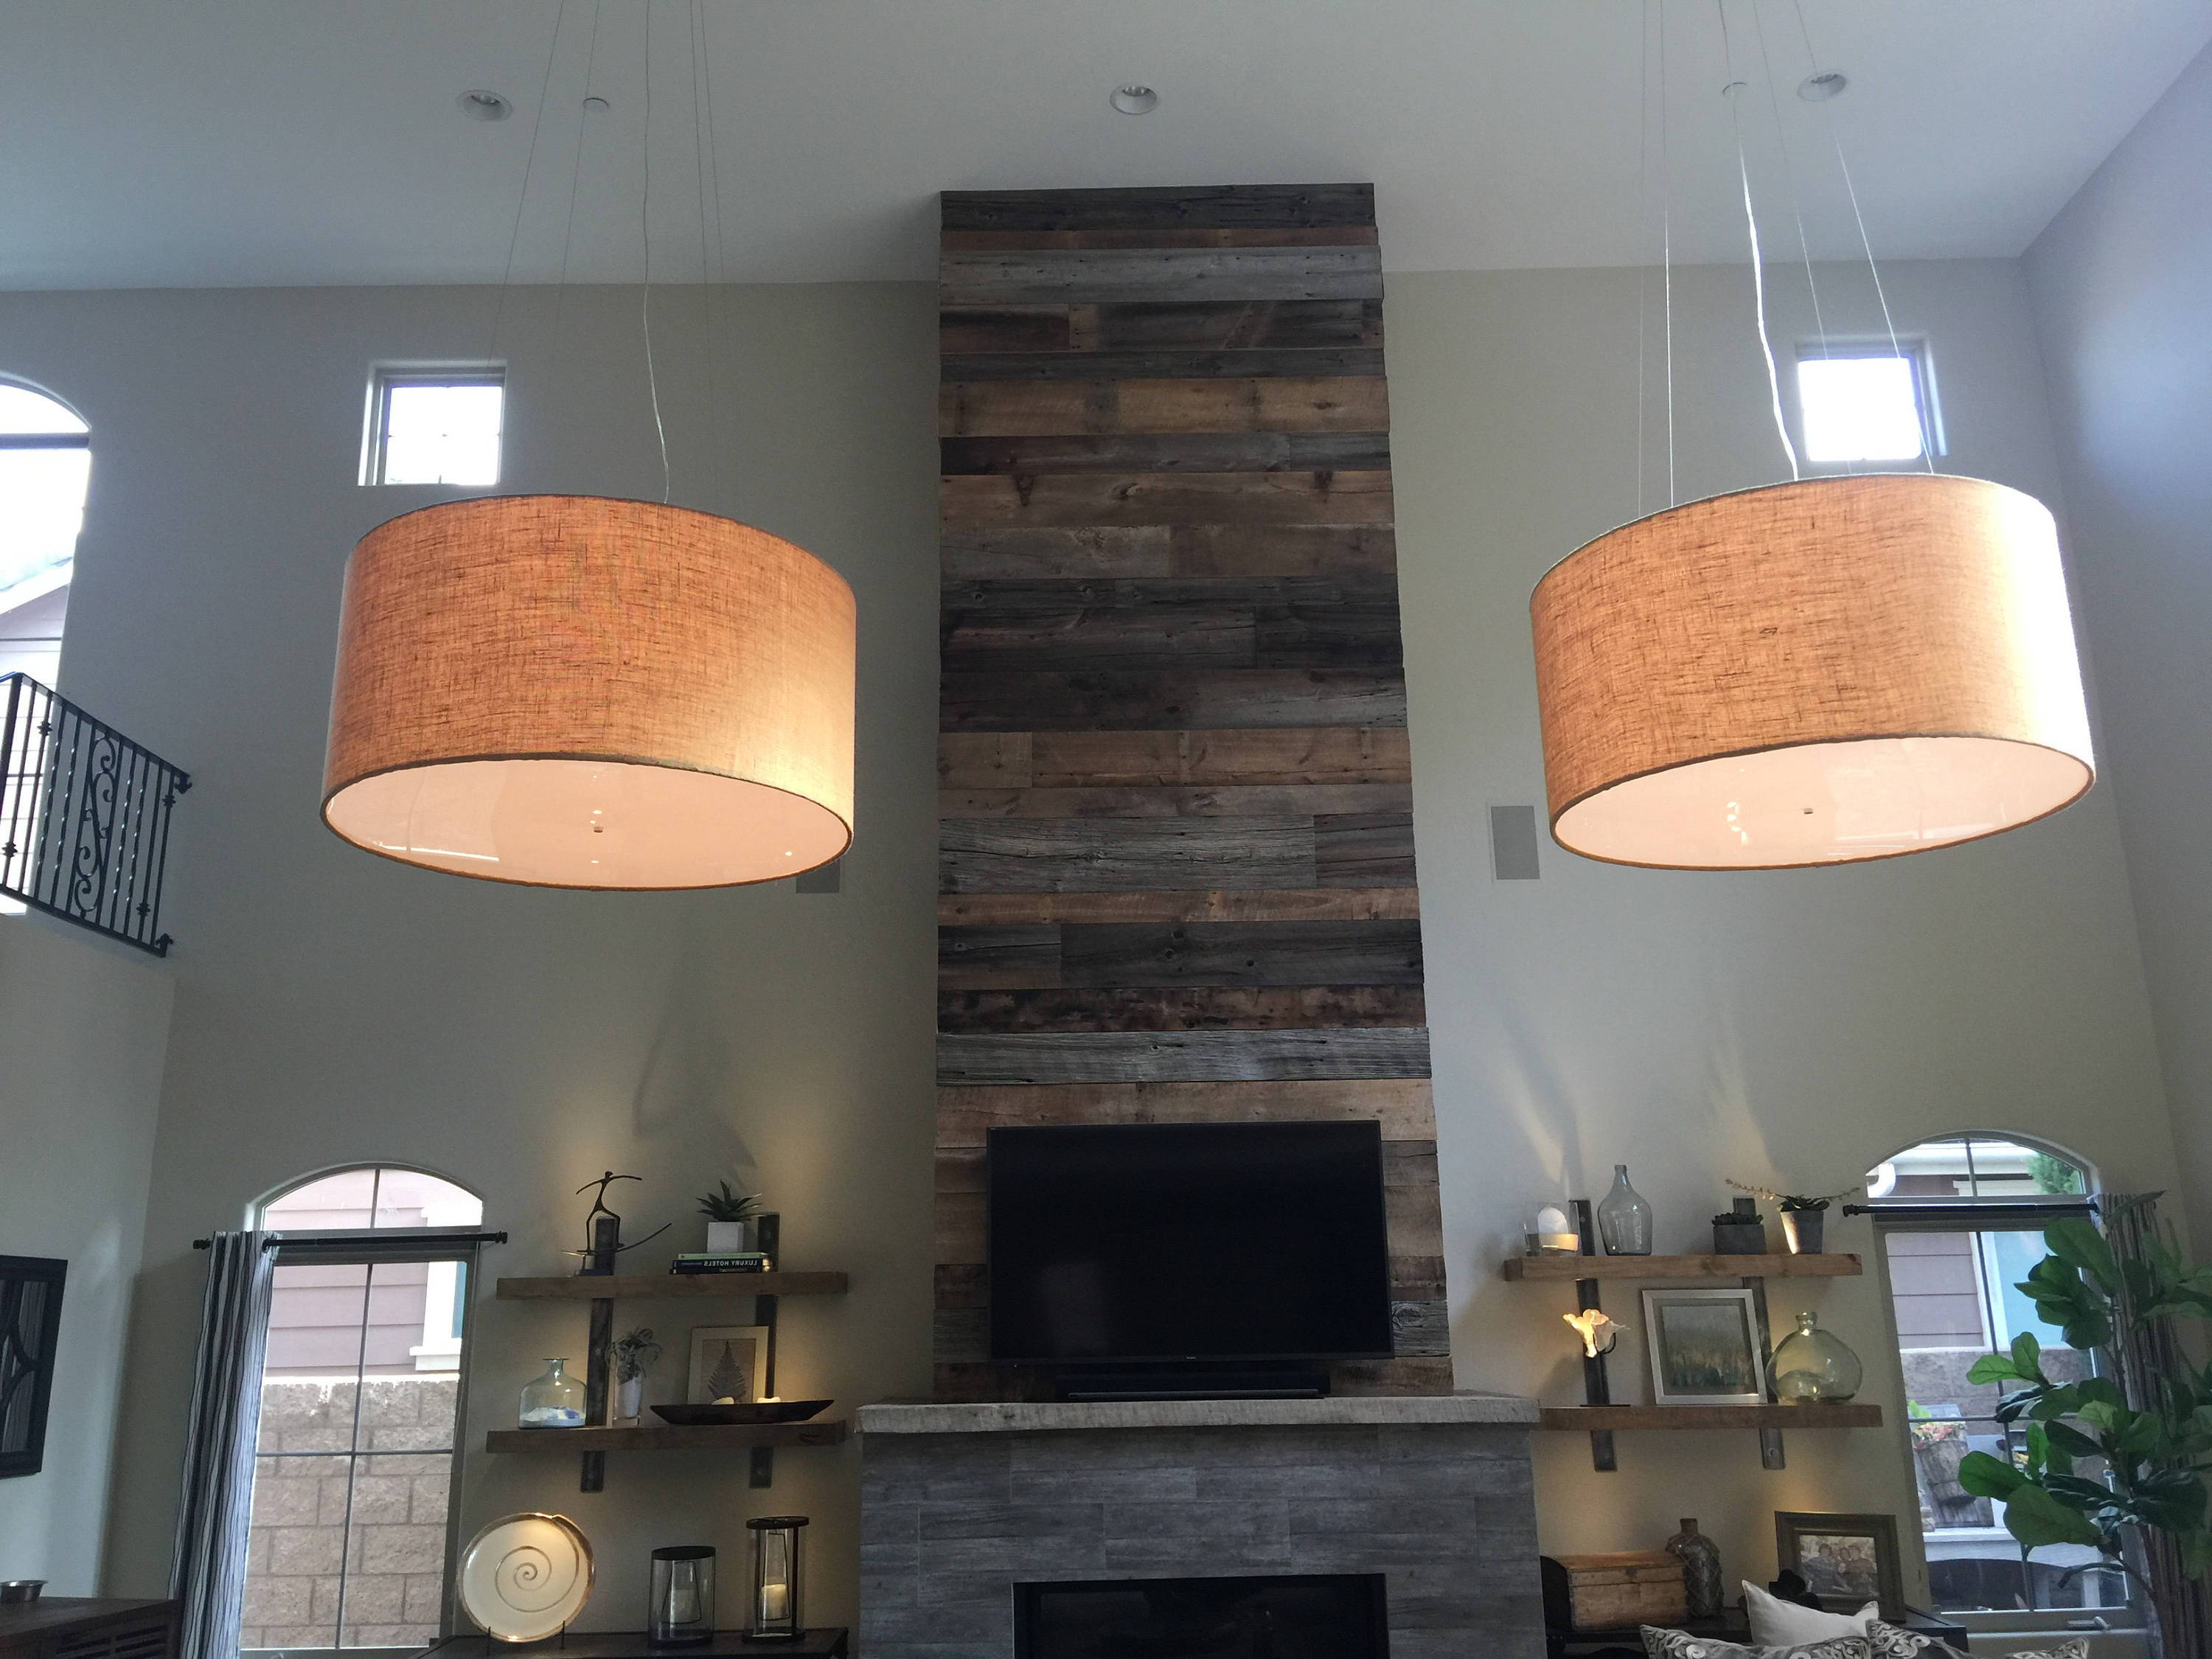 Well Known Custom 48 Inch Extra Large Drum Pendant Light Fixture Throughout Vincent 5 Light Drum Chandeliers (View 22 of 25)